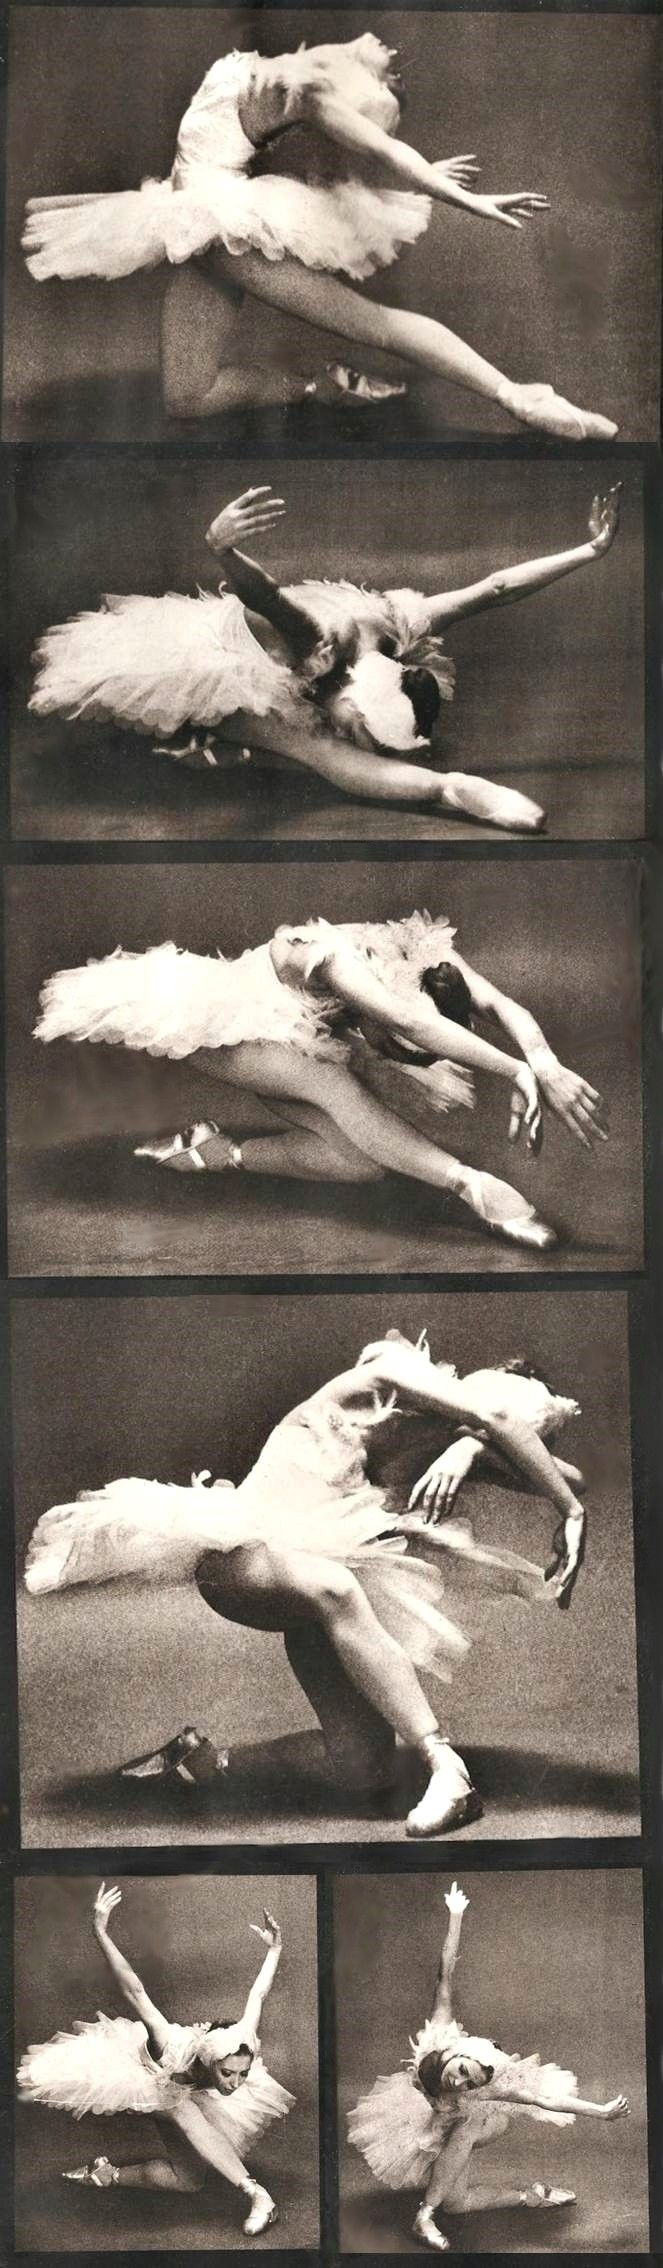 Natalia Makarova (in 'The Dying Swan') by Max Waldman, 1975. Such a gorgeous back! I first saw her dance in 1970 after she defected. Such an inspiration.                                                                                                                                                     More